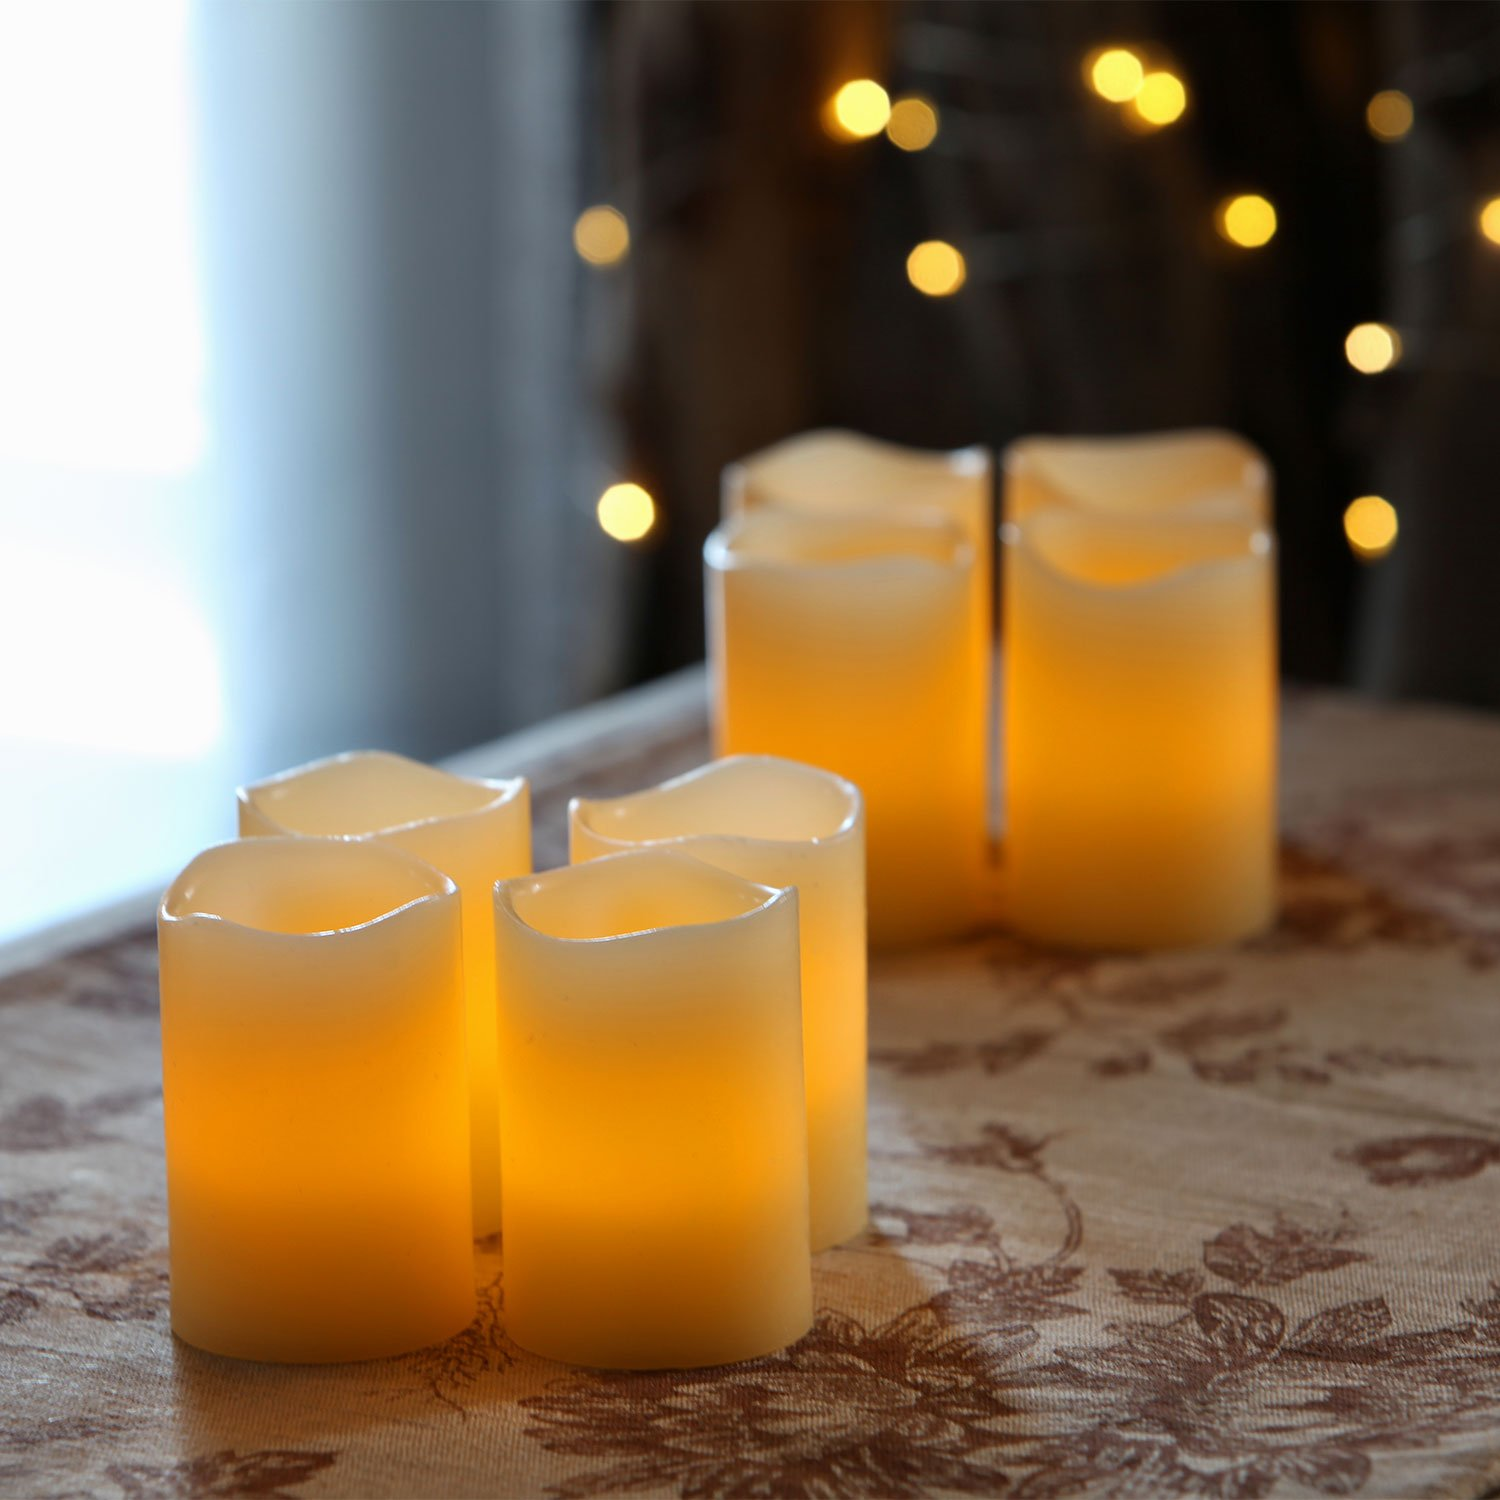 8 Ivory 3'' Flameless Votives with Warm White LEDs, Mini Wax Candles, Melted Edge, Batteries Included by LampLust (Image #3)